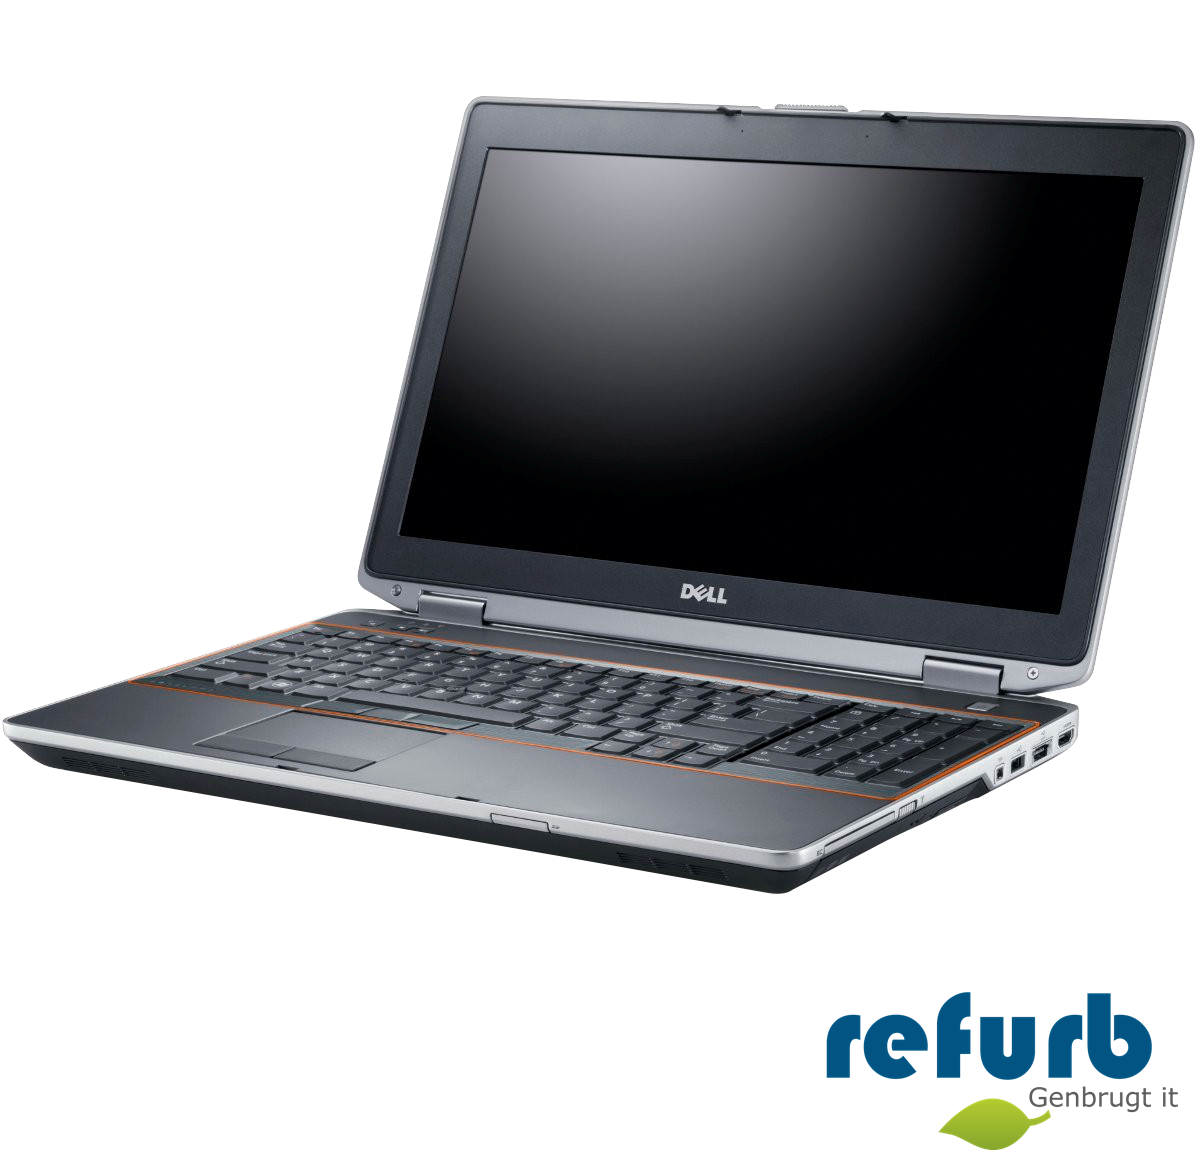 Dell latitude e6520 fra Dell fra refurb